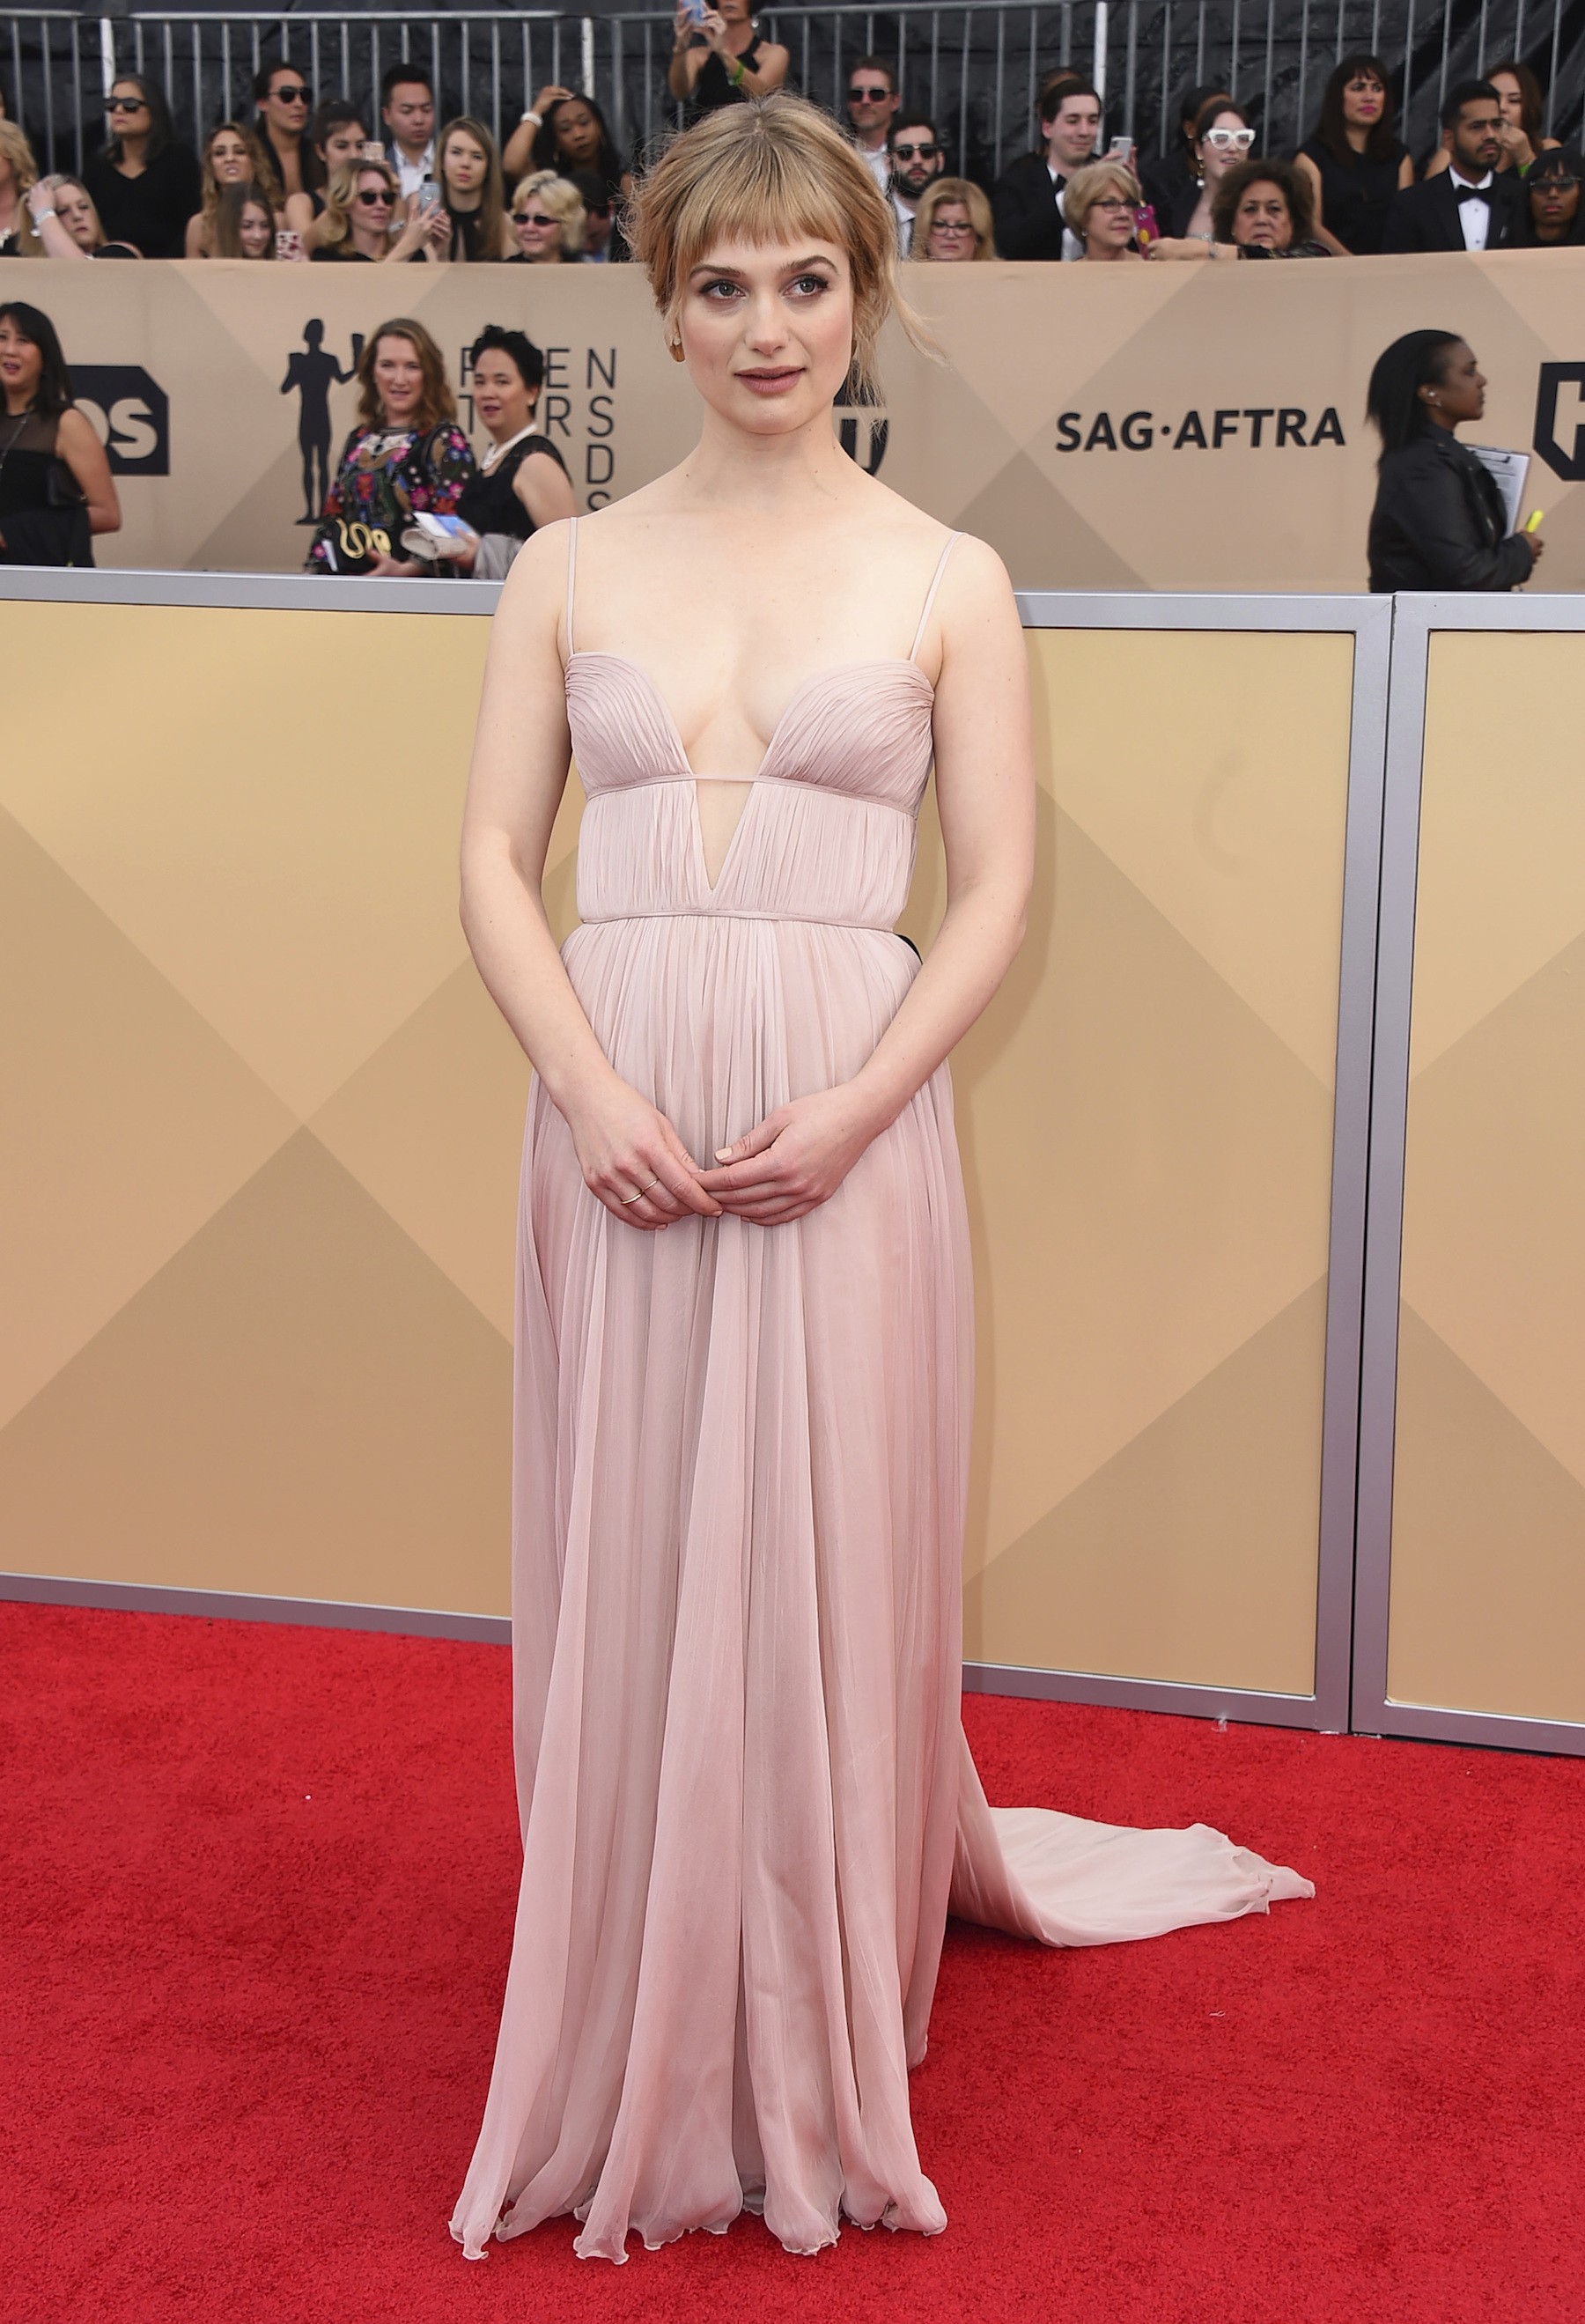 <div class='meta'><div class='origin-logo' data-origin='AP'></div><span class='caption-text' data-credit='Jordan Strauss/Invision/AP'>Alison Sudol arrives at the 24th annual Screen Actors Guild Awards at the Shrine Auditorium & Expo Hall on Sunday, Jan. 21, 2018, in Los Angeles.</span></div>